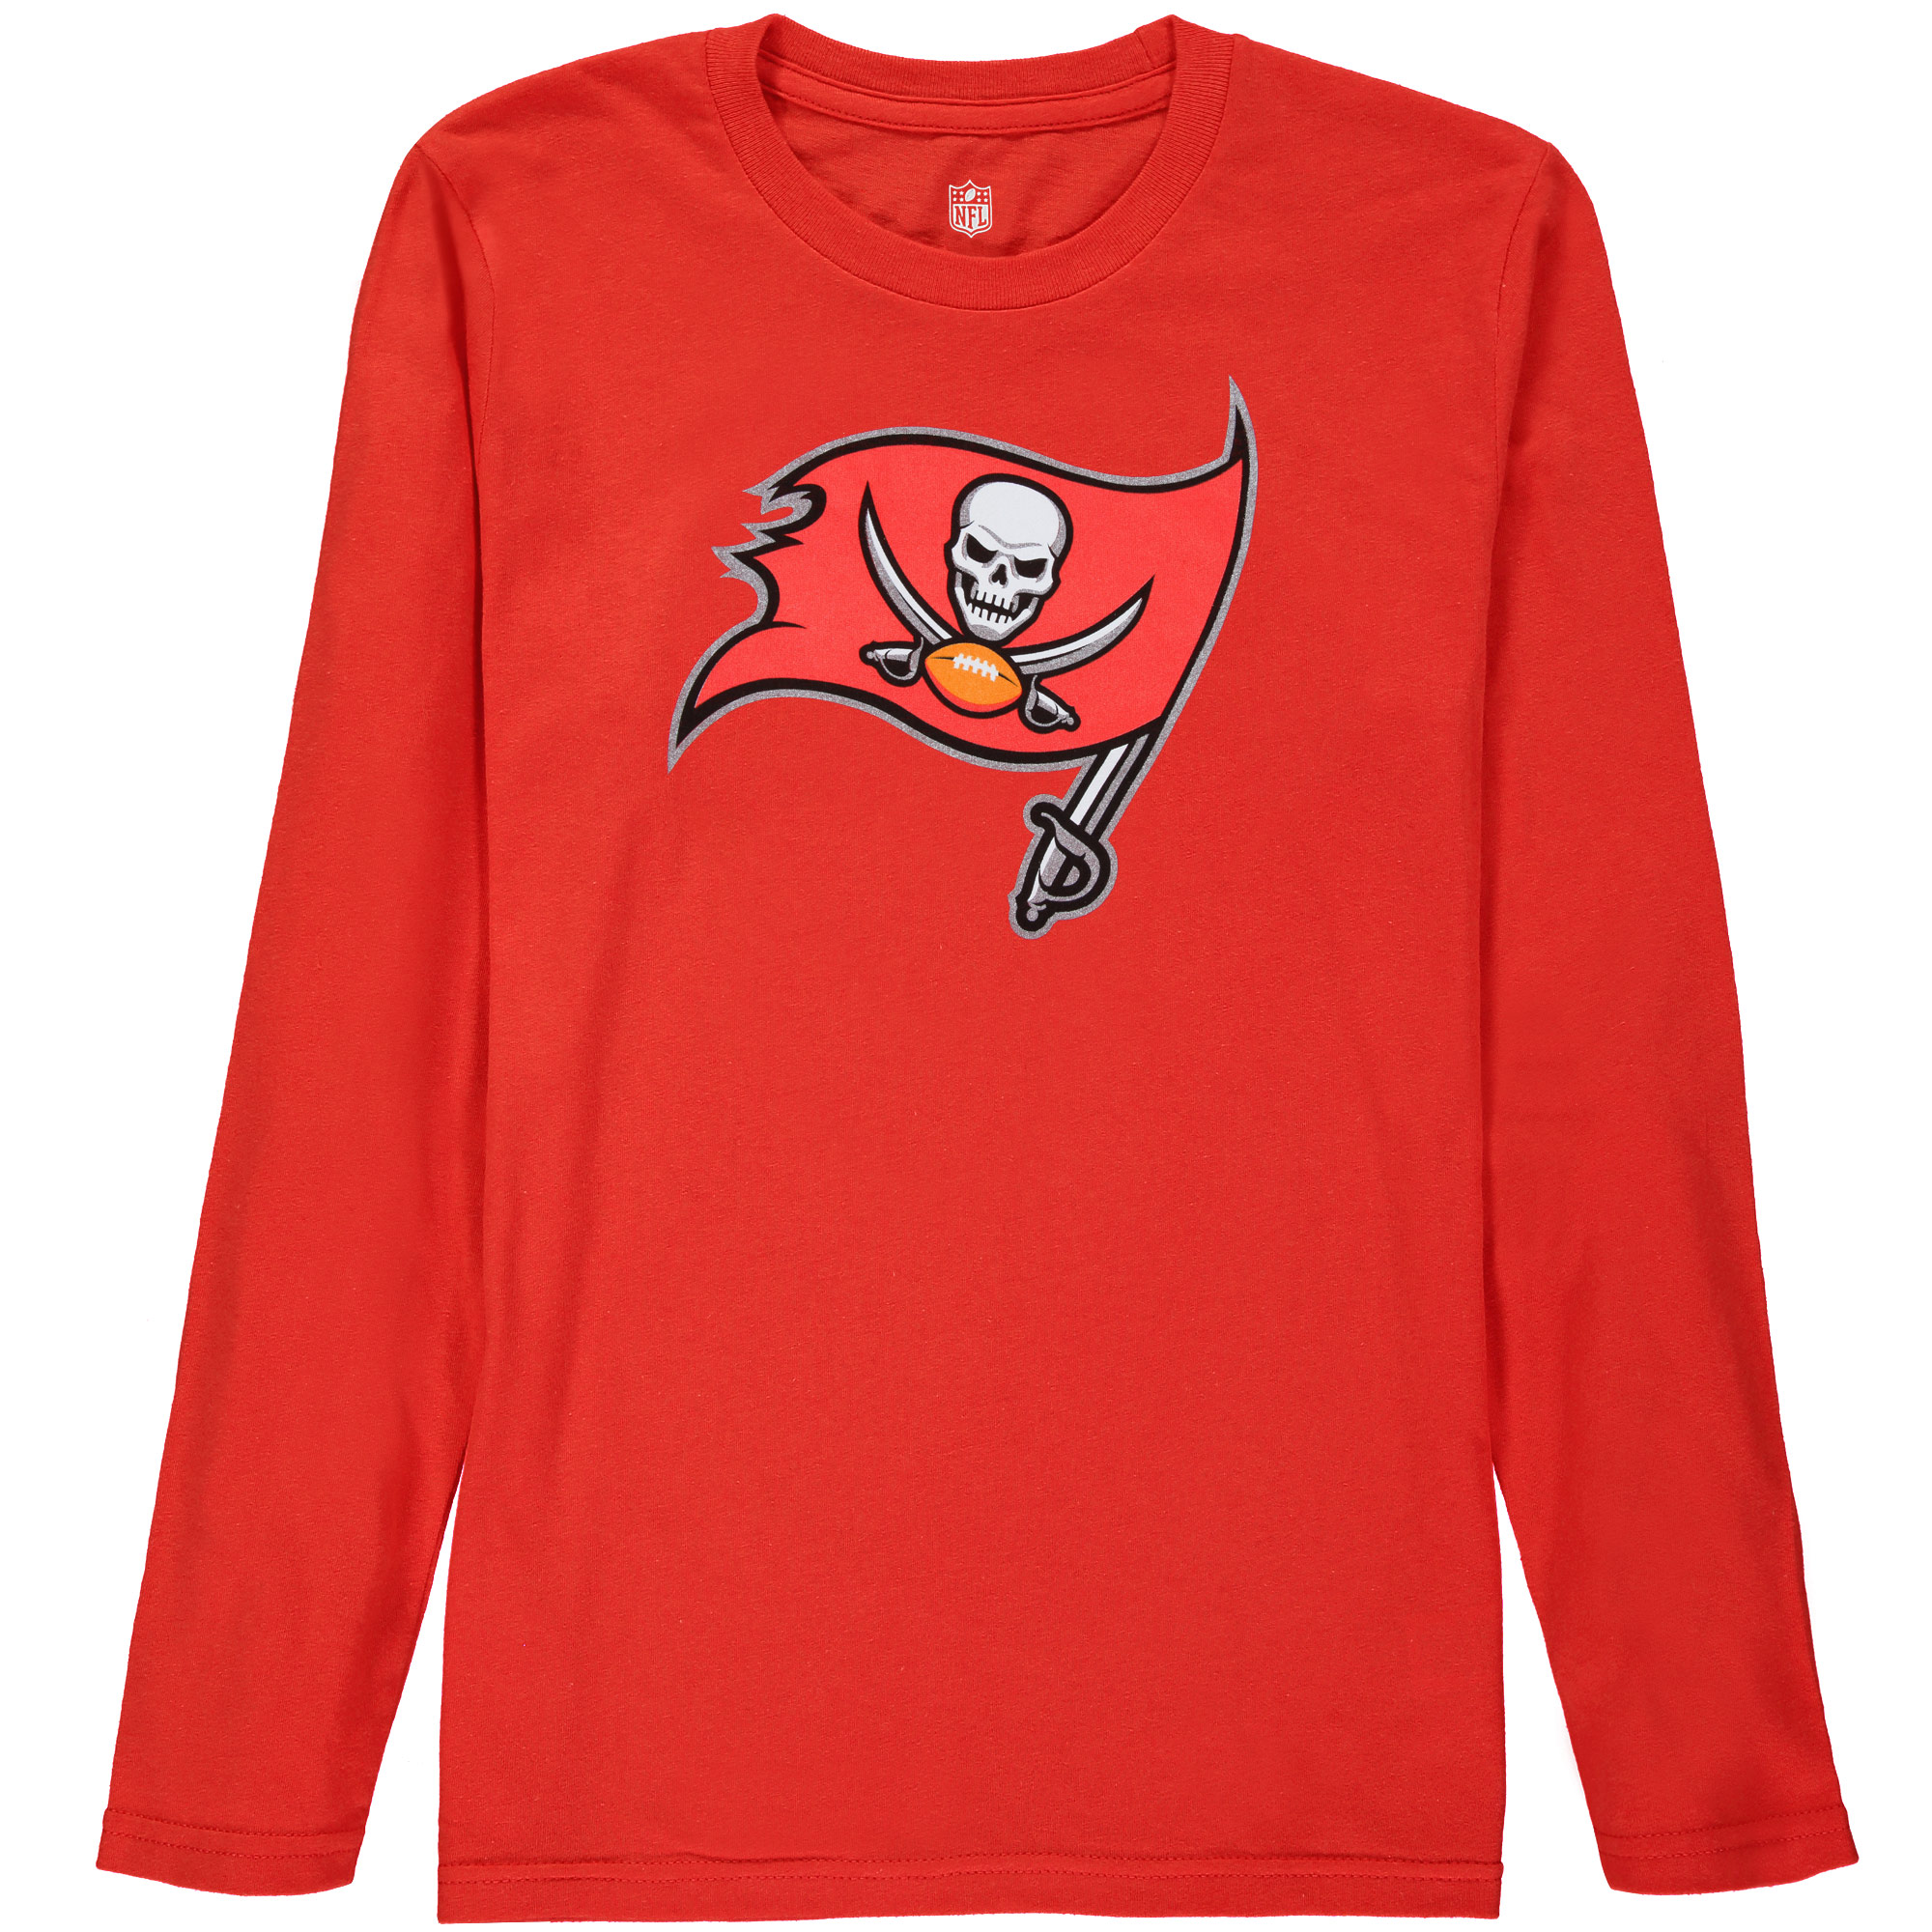 Tampa Bay Buccaneers Youth Team Logo Long Sleeve T-Shirt - Red